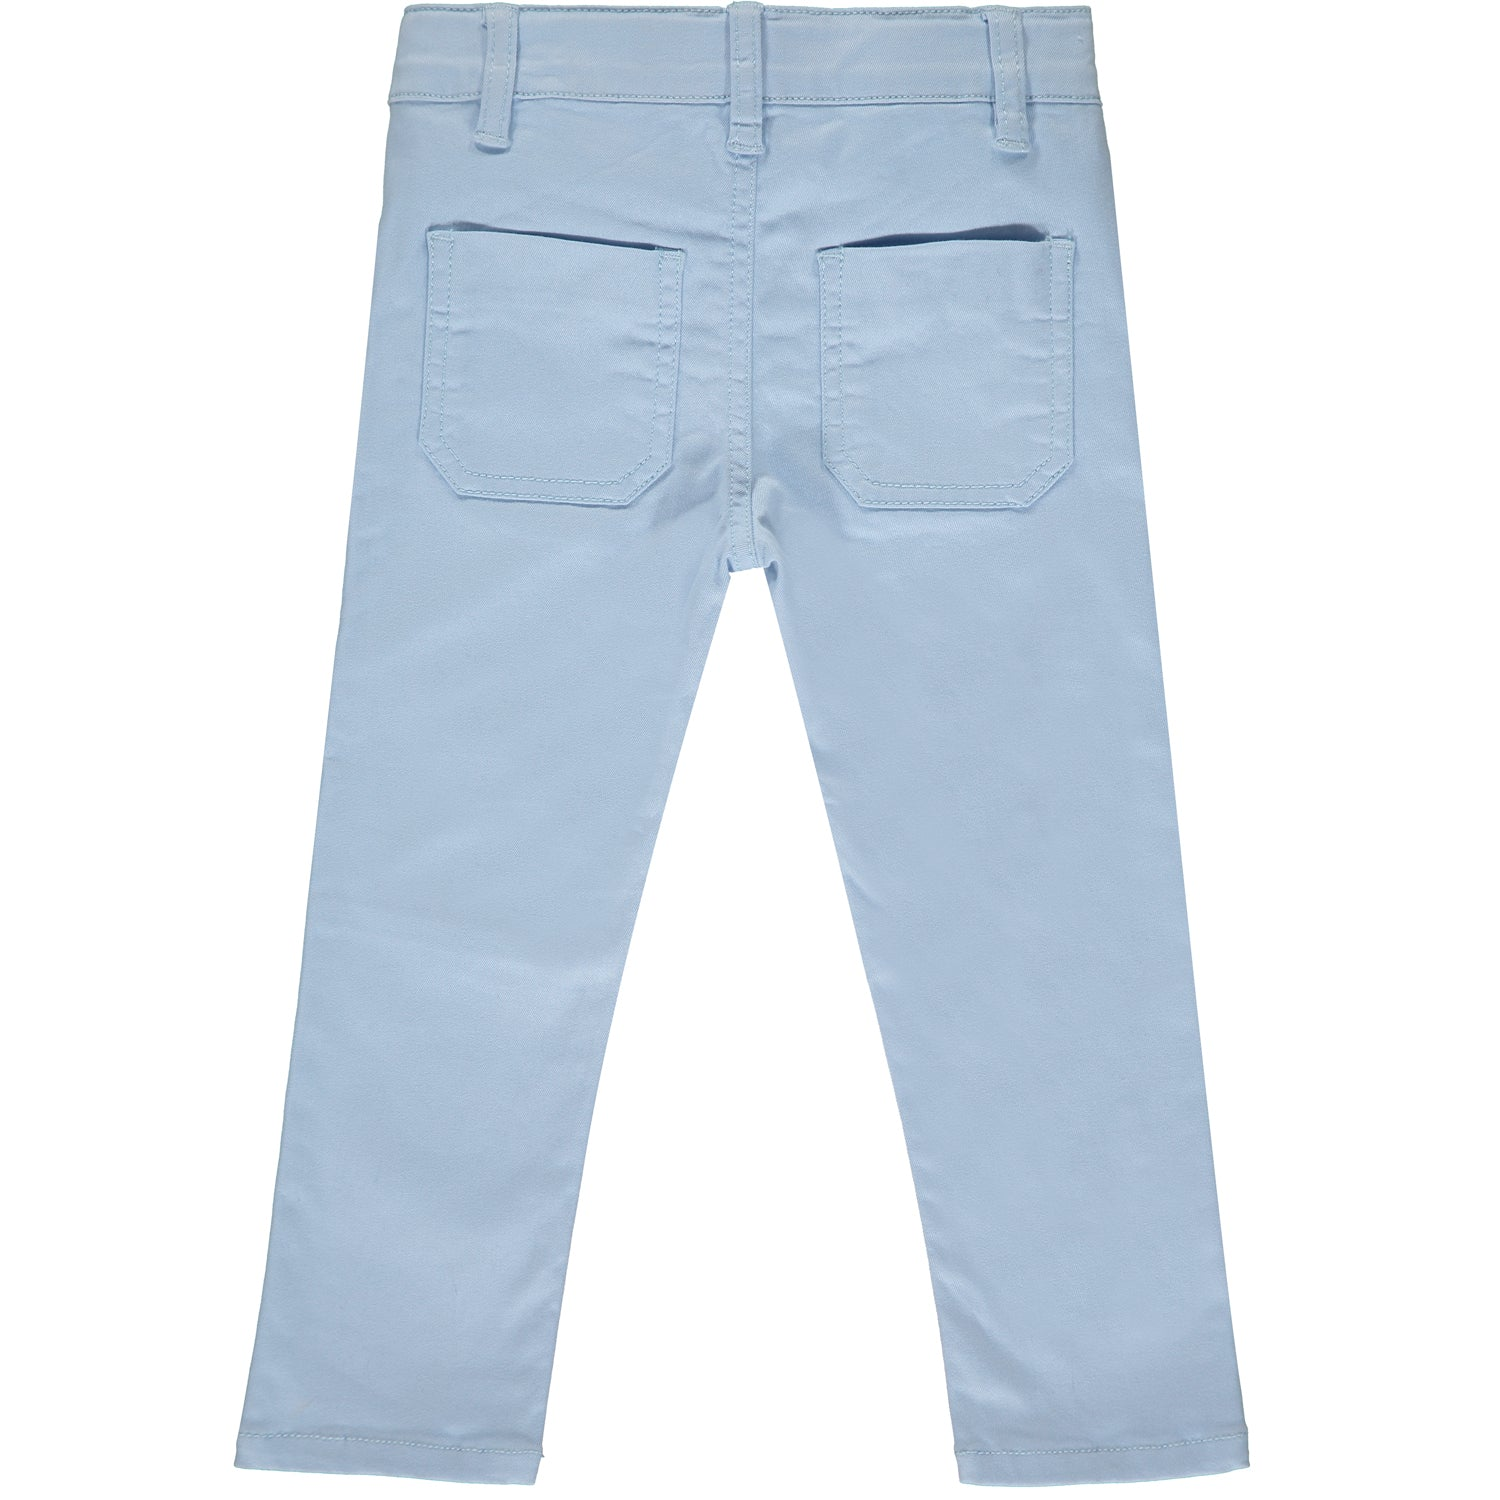 Mitch and Son Twill Trousers - The Mango Tree